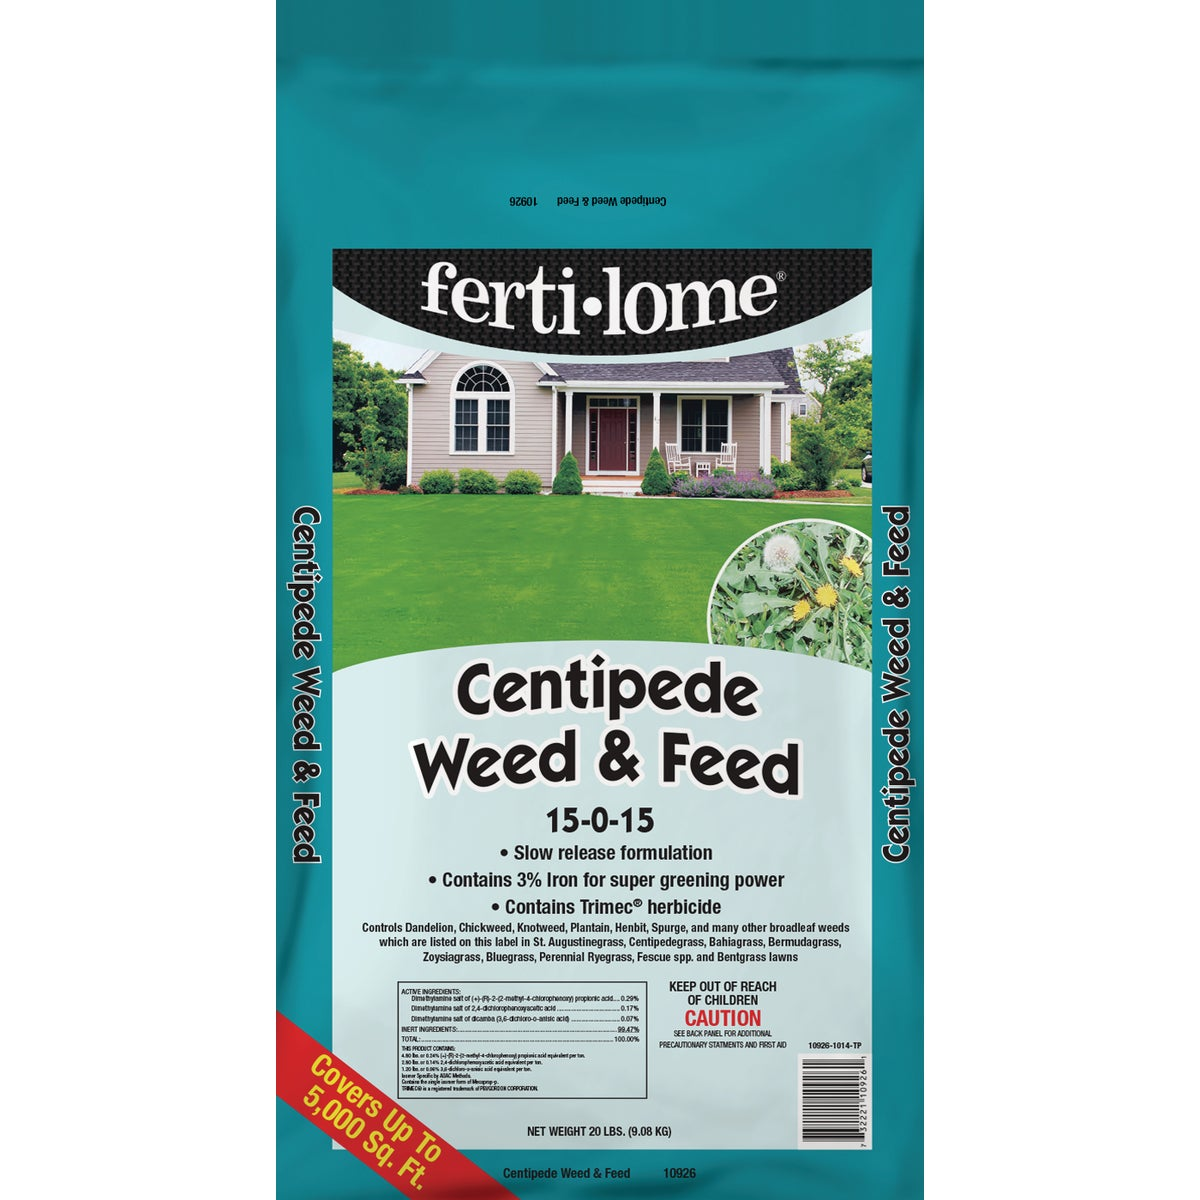 20LB CENT WEED & FEED - 10926 by Vpg Fertilome